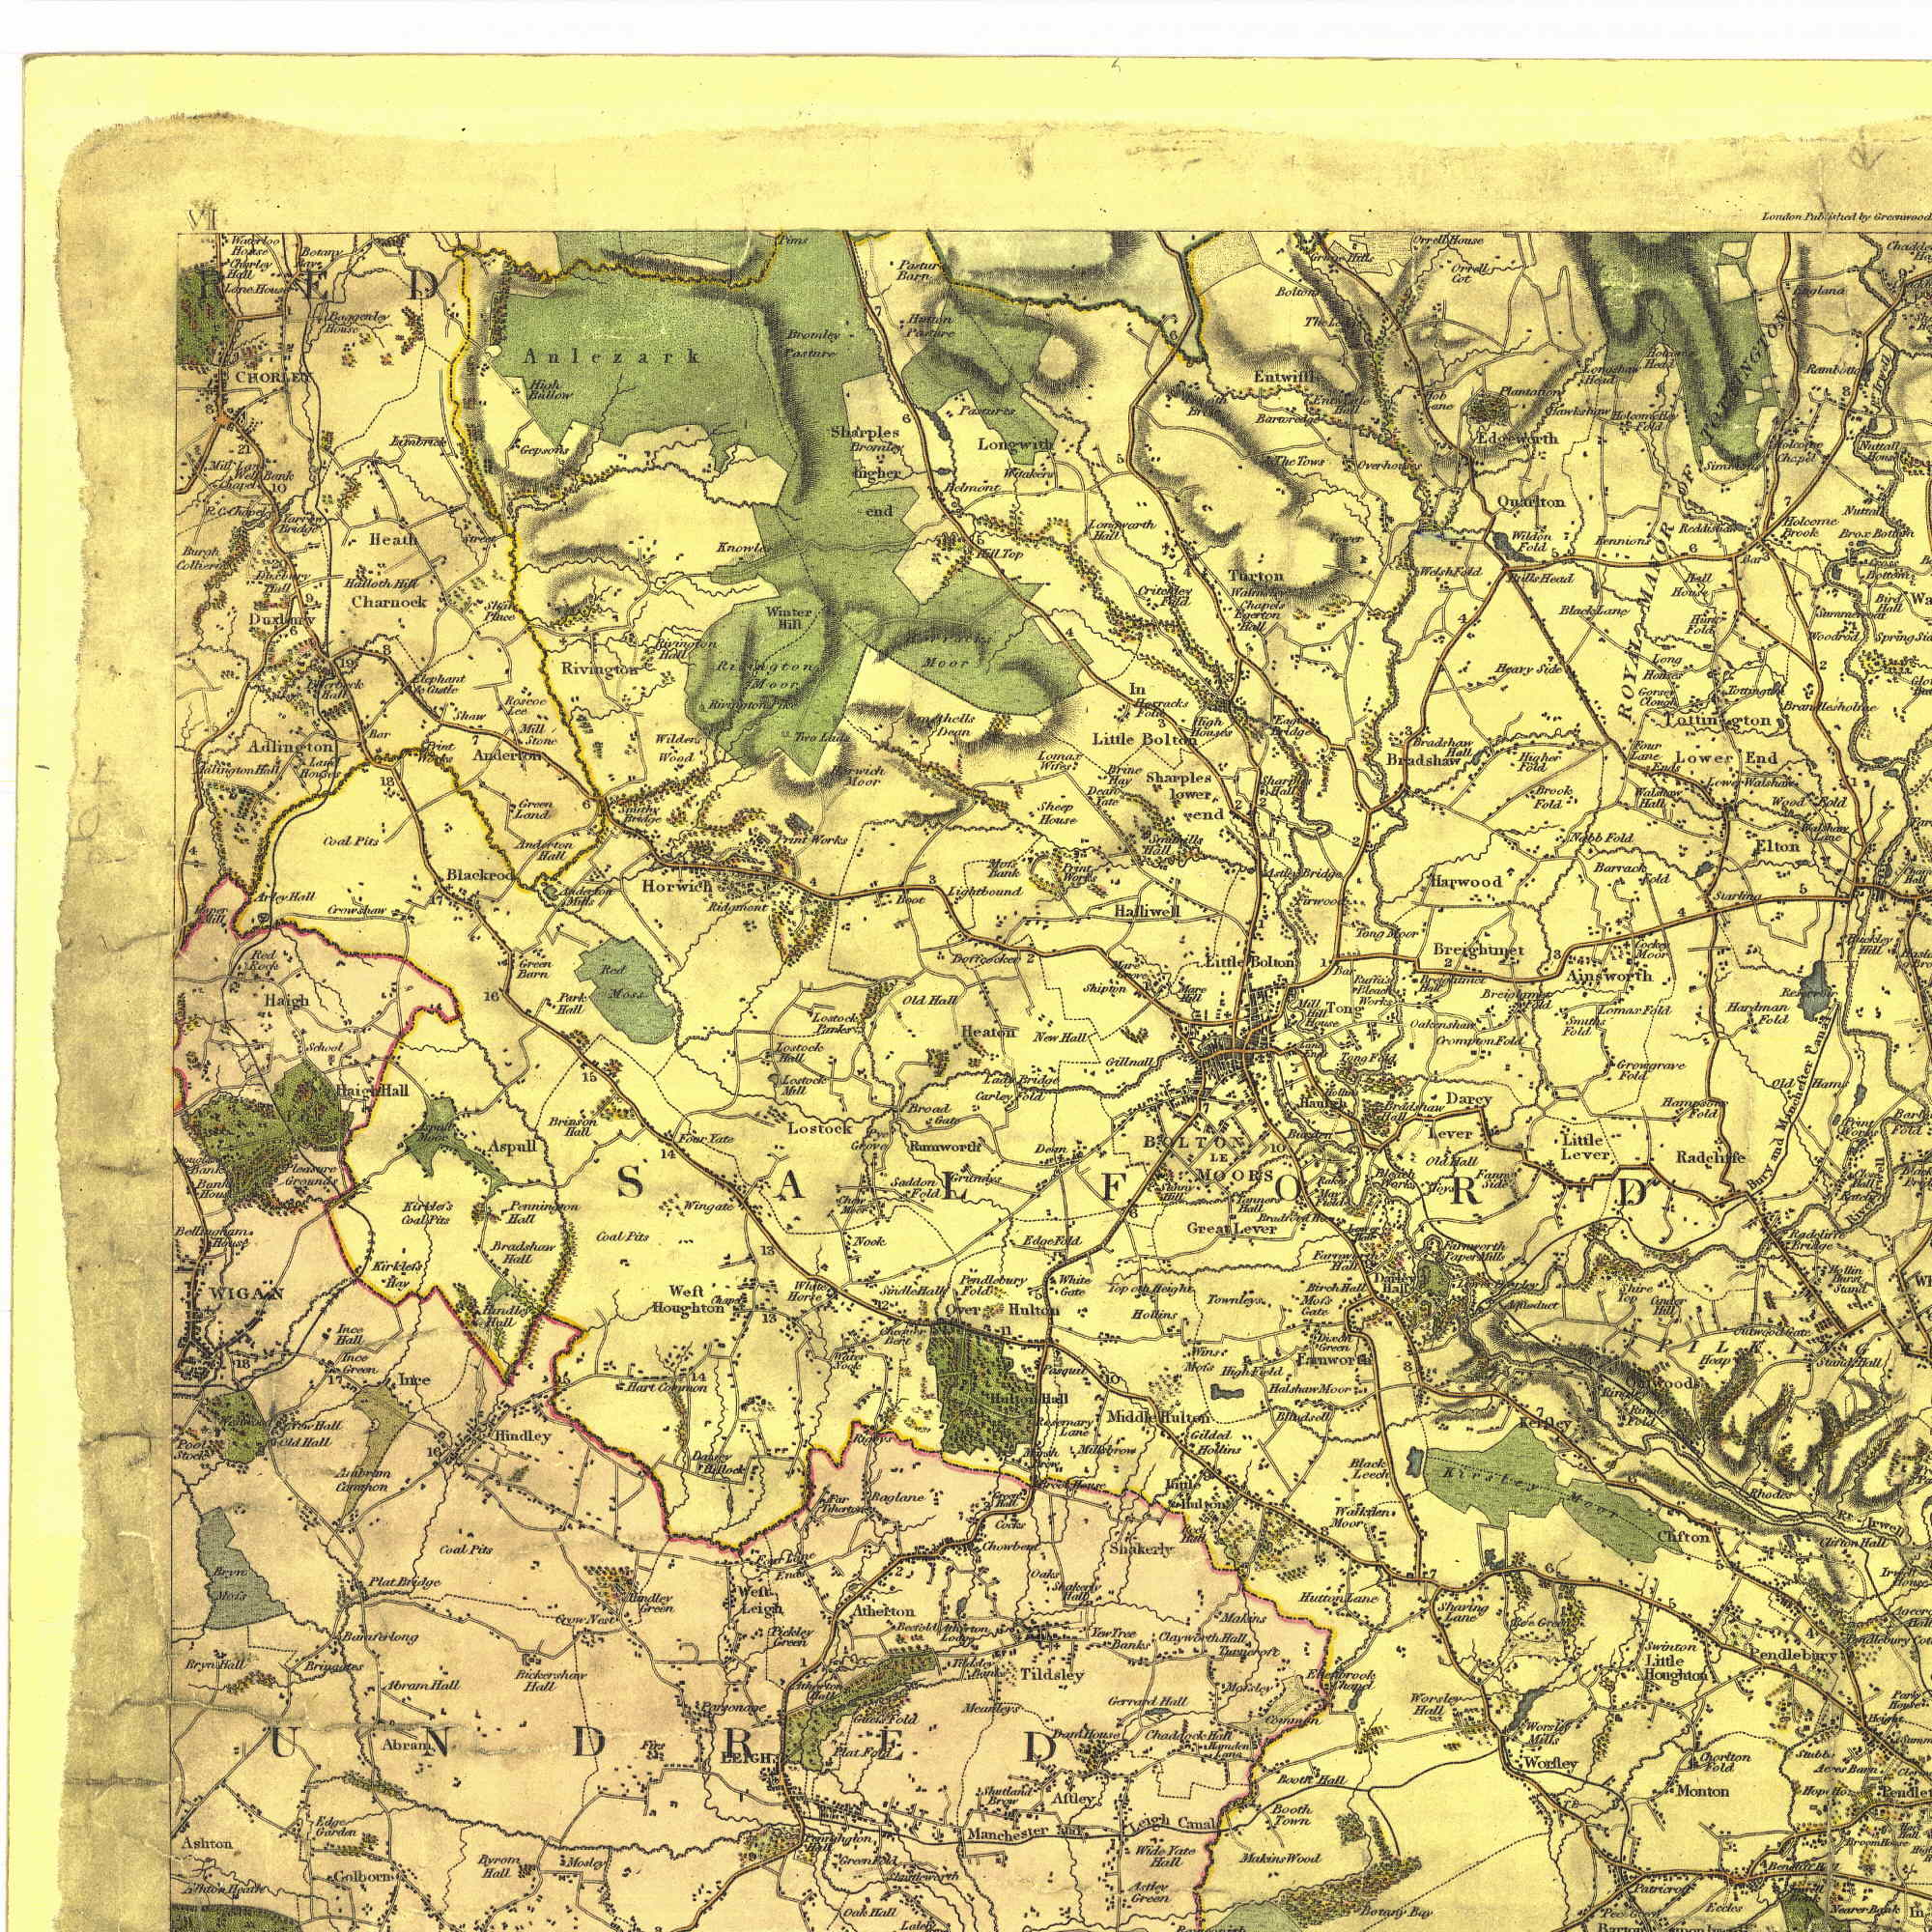 Chris and John Greenwood mapped the UK during the 1820's to a very high standard.